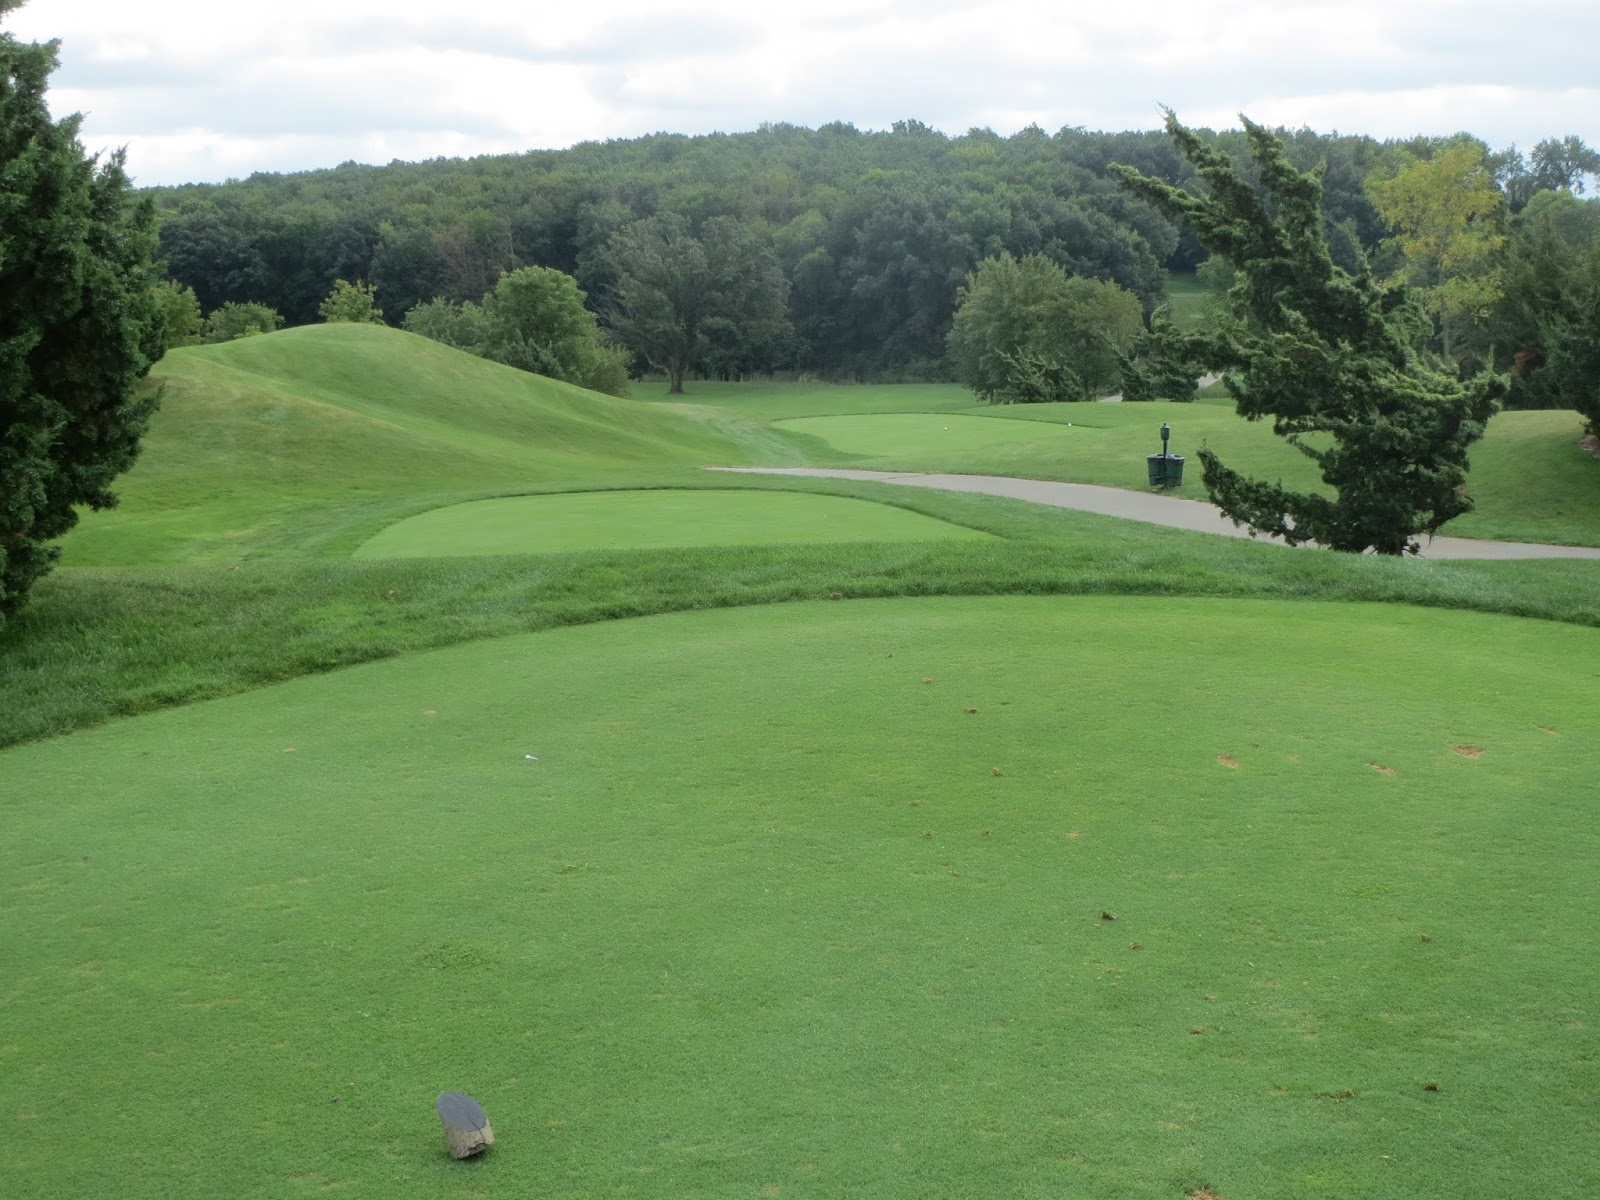 ironwood golf course callow to meath sussex wisconsin. Black Bedroom Furniture Sets. Home Design Ideas